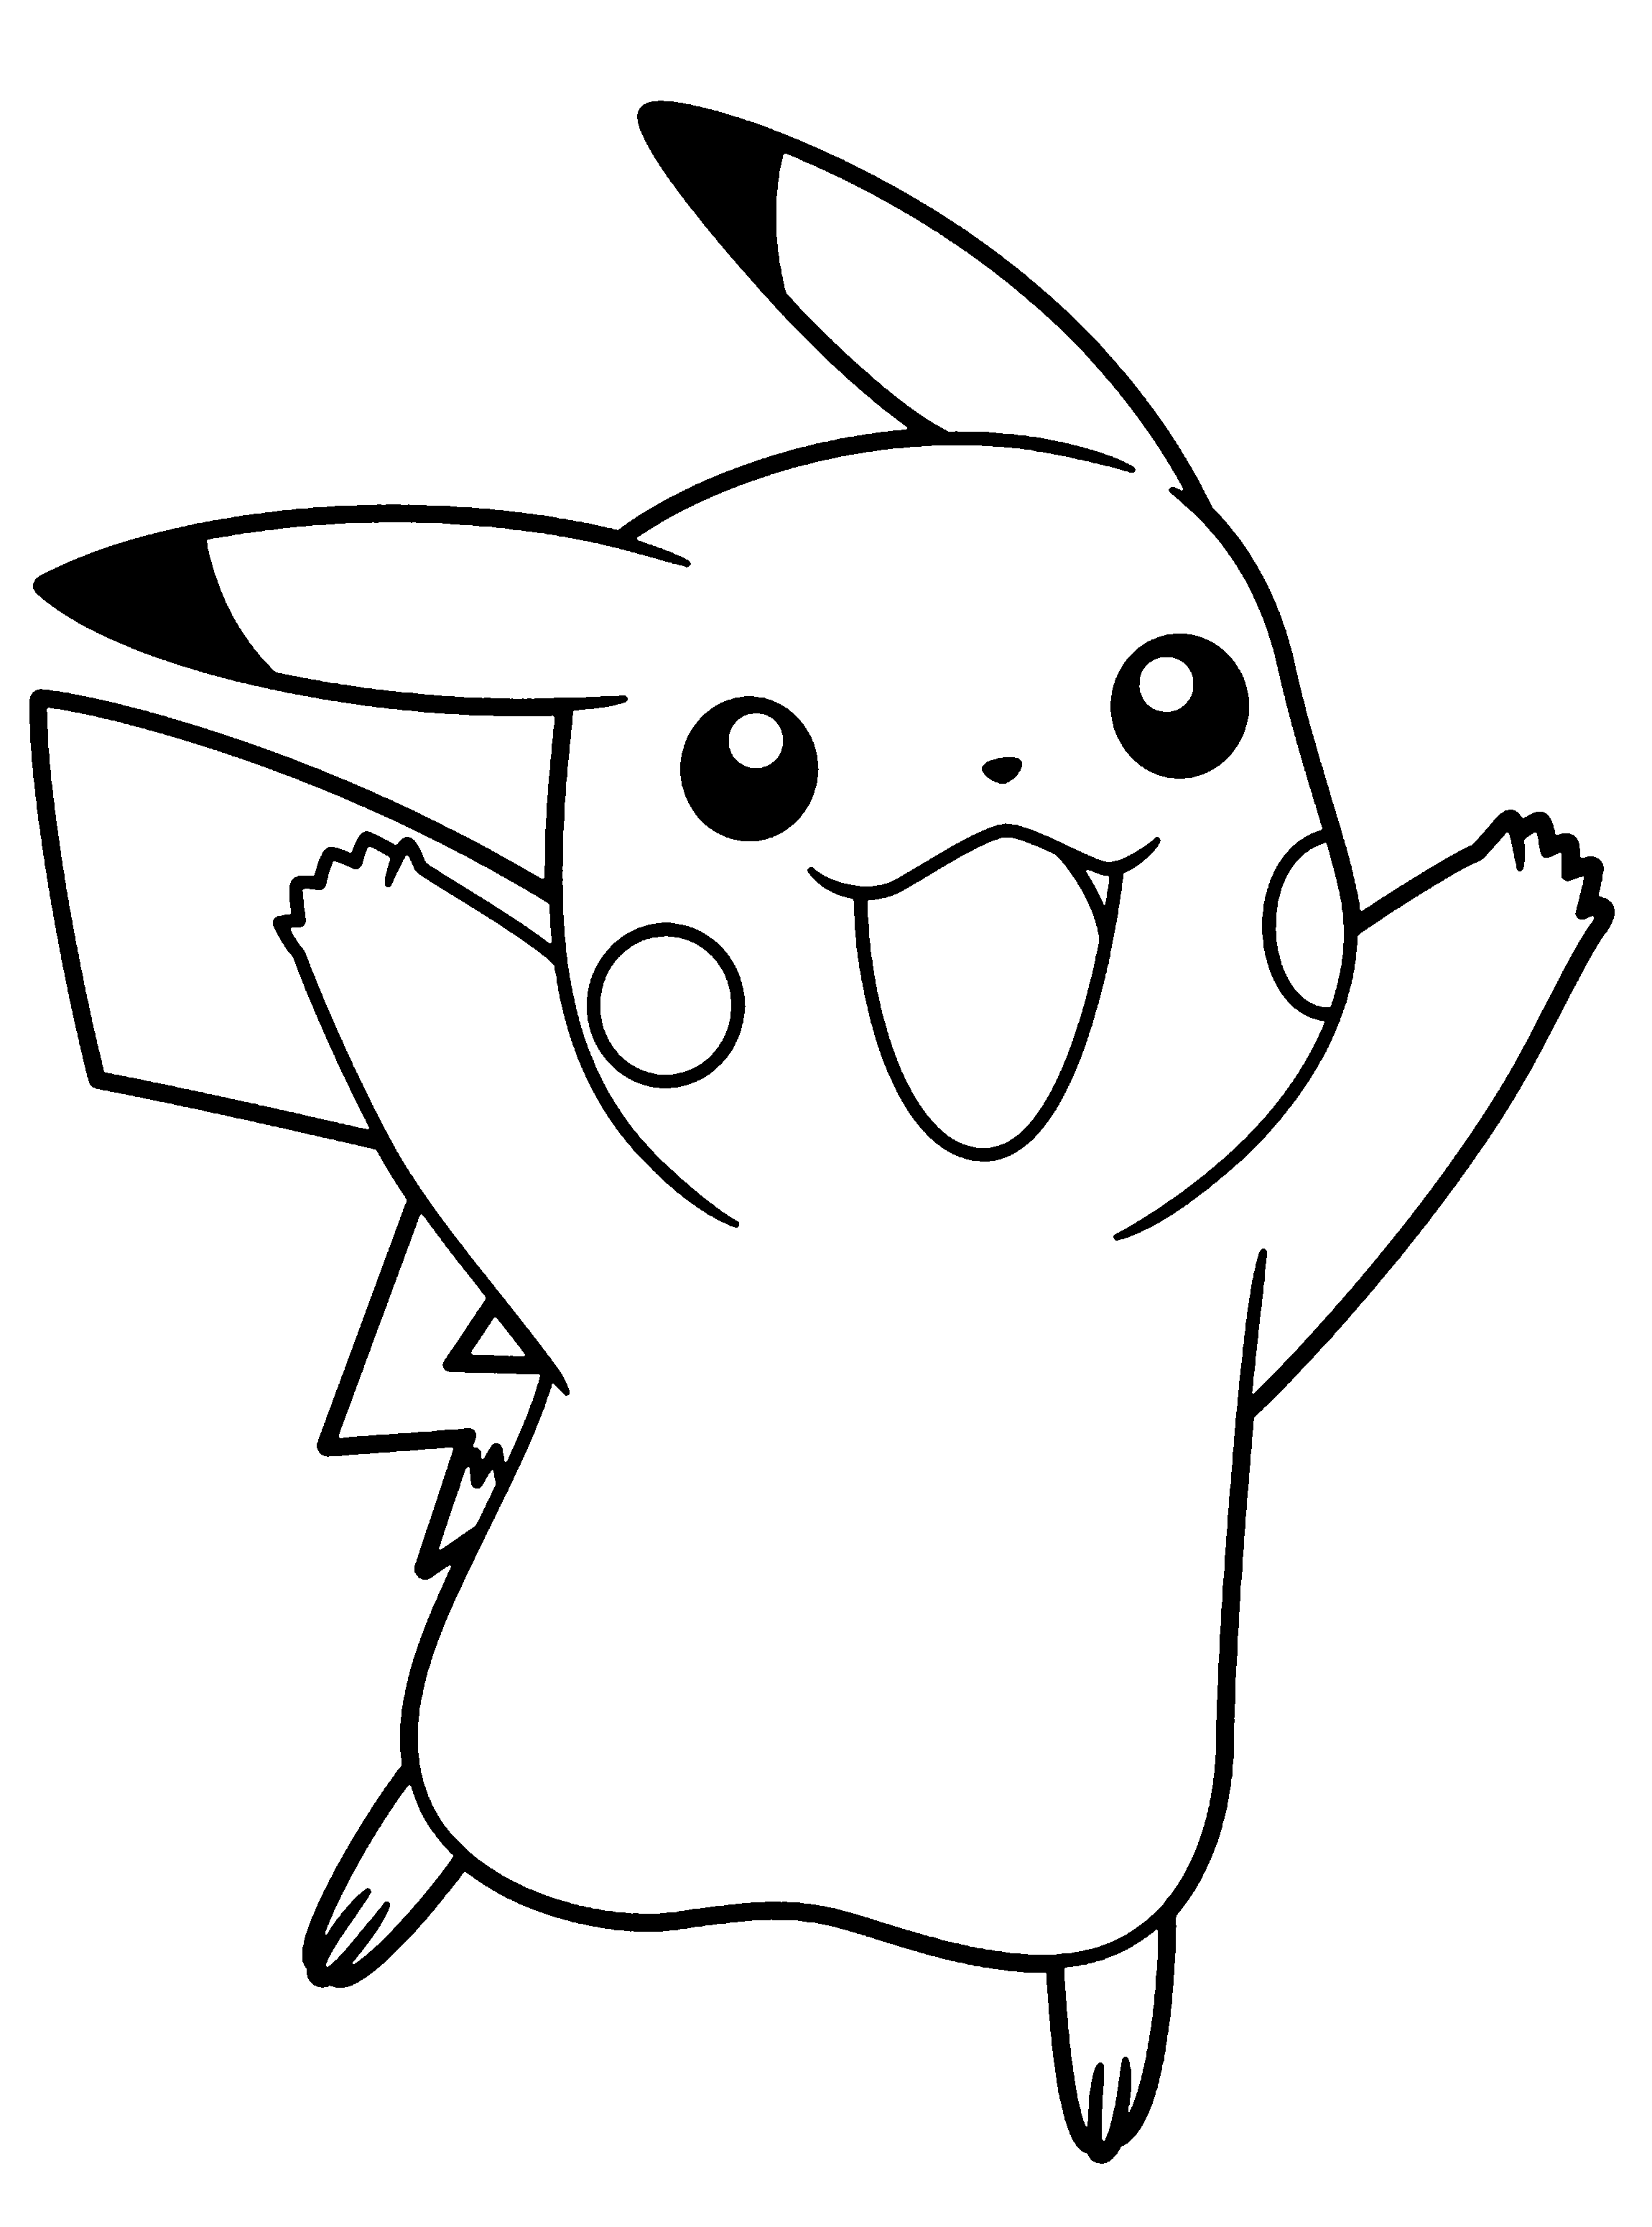 pikachu coloring pages,printable,coloring pages